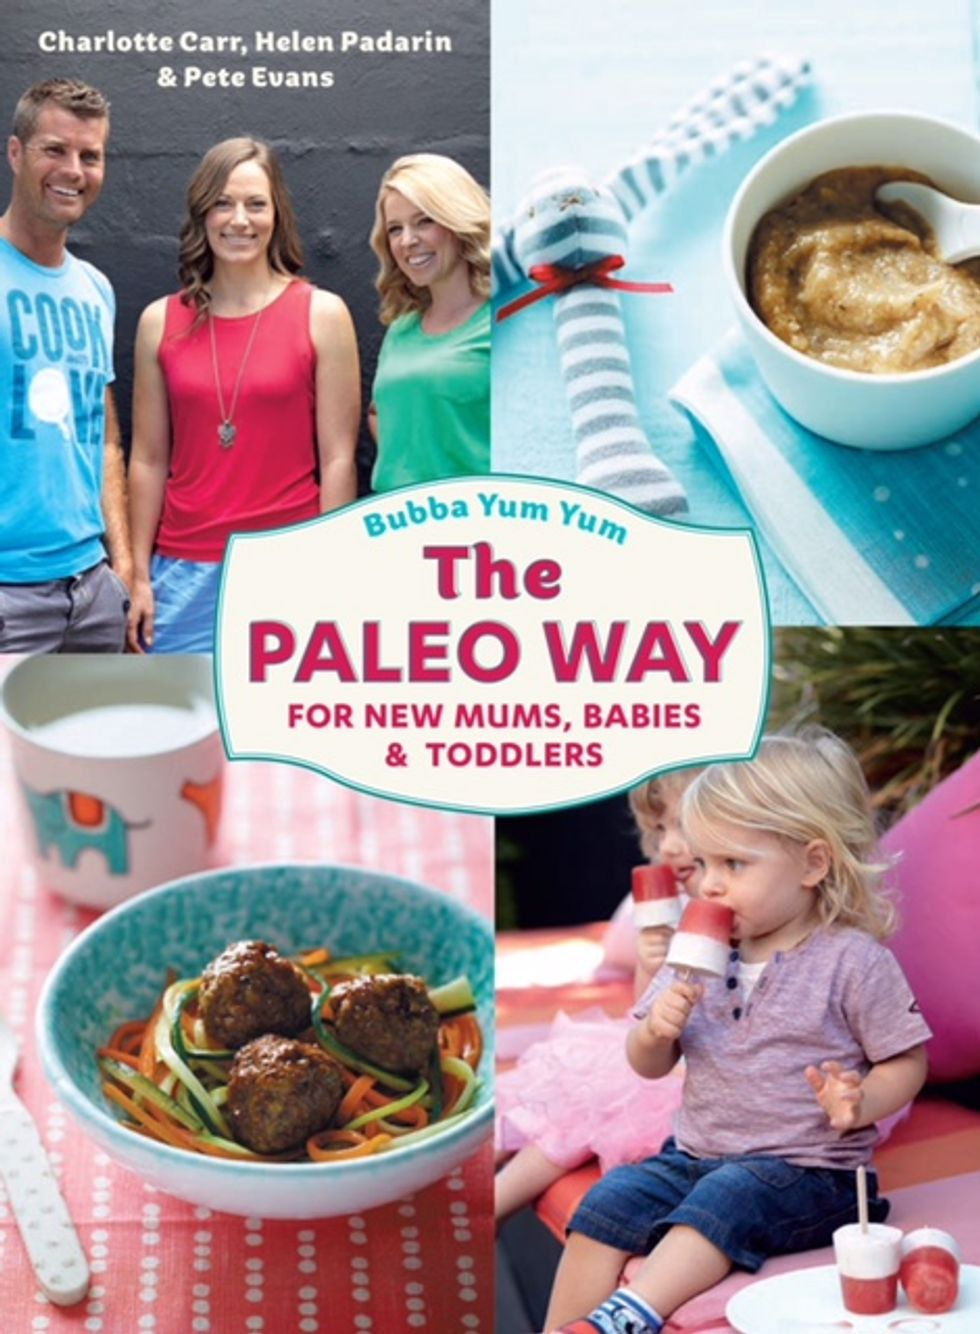 Baby Paleo Cookbook On Hold Over Health Concerns